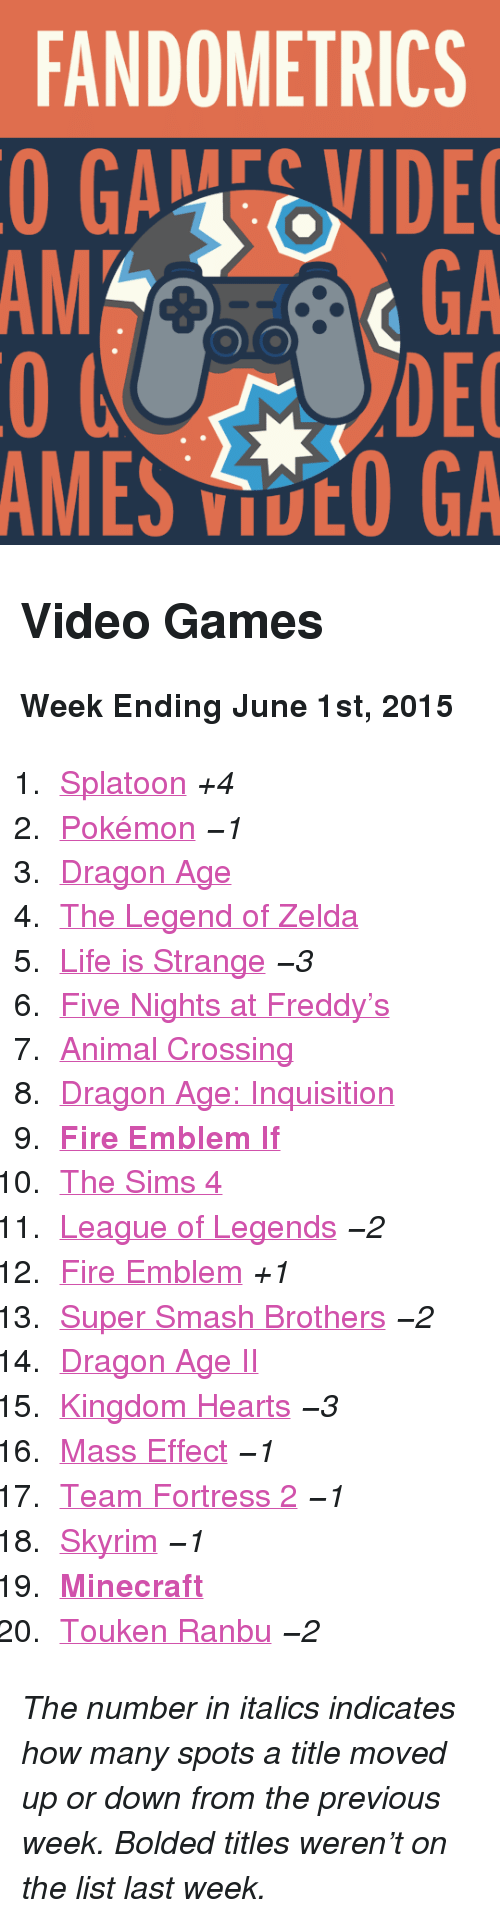 "Five Nights: FANDOMETRICS  GAEVIDE  GA  DEC  AMES VOO GA  AM <h2>Video Games</h2><p><b>Week Ending June 1st, 2015</b></p><ol><li><a href=""http://www.tumblr.com/search/splatoon"">Splatoon</a> <i>+4</i></li>  <li><a href=""http://www.tumblr.com/search/pokemon"">Pokémon</a> <i>−1</i></li>  <li><a href=""http://www.tumblr.com/search/dragon%20age"">Dragon Age</a></li>  <li><a href=""http://www.tumblr.com/search/legend%20of%20zelda"">The Legend of Zelda</a></li>  <li><a href=""http://www.tumblr.com/search/life%20is%20strange"">Life is Strange</a> <i>−3</i></li>  <li><a href=""http://www.tumblr.com/search/five%20nights%20at%20freddy's"">Five Nights at Freddy&rsquo;s</a></li>  <li><a href=""http://www.tumblr.com/search/acnl"">Animal Crossing</a></li>  <li><a href=""http://www.tumblr.com/search/dragon%20age%20inquisition"">Dragon Age: Inquisition</a></li>  <li><a href=""http://www.tumblr.com/search/fire%20emblem%20if""><b>Fire Emblem If</b></a></li>  <li><a href=""http://www.tumblr.com/search/sims%204"">The Sims 4</a></li>  <li><a href=""http://www.tumblr.com/search/league%20of%20legends"">League of Legends</a> <i>−2</i></li>  <li><a href=""http://www.tumblr.com/search/fire%20emblem"">Fire Emblem</a> <i>+1</i></li>  <li><a href=""http://www.tumblr.com/search/super%20smash%20bros"">Super Smash Brothers</a> <i>−2</i></li>  <li><a href=""http://www.tumblr.com/search/dragon%20age%202"">Dragon Age II</a></li>  <li><a href=""http://www.tumblr.com/search/kingdom%20hearts"">Kingdom Hearts</a> <i>−3</i></li>  <li><a href=""http://www.tumblr.com/search/mass%20effect"">Mass Effect</a> <i>−1</i></li>  <li><a href=""http://www.tumblr.com/search/tf2"">Team Fortress 2</a> <i>−1</i></li>  <li><a href=""http://www.tumblr.com/search/skyrim"">Skyrim</a> <i>−1</i></li>  <li><a href=""http://www.tumblr.com/search/minecraft""><b>Minecraft</b></a></li>  <li><a href=""http://www.tumblr.com/search/touken%20ranbu"">Touken Ranbu</a> <i>−2</i></li></ol><p><i>The number in italics indicates how many spots a title moved up or down from the previous week. Bolded titles weren't on the list last week.</i></p>"